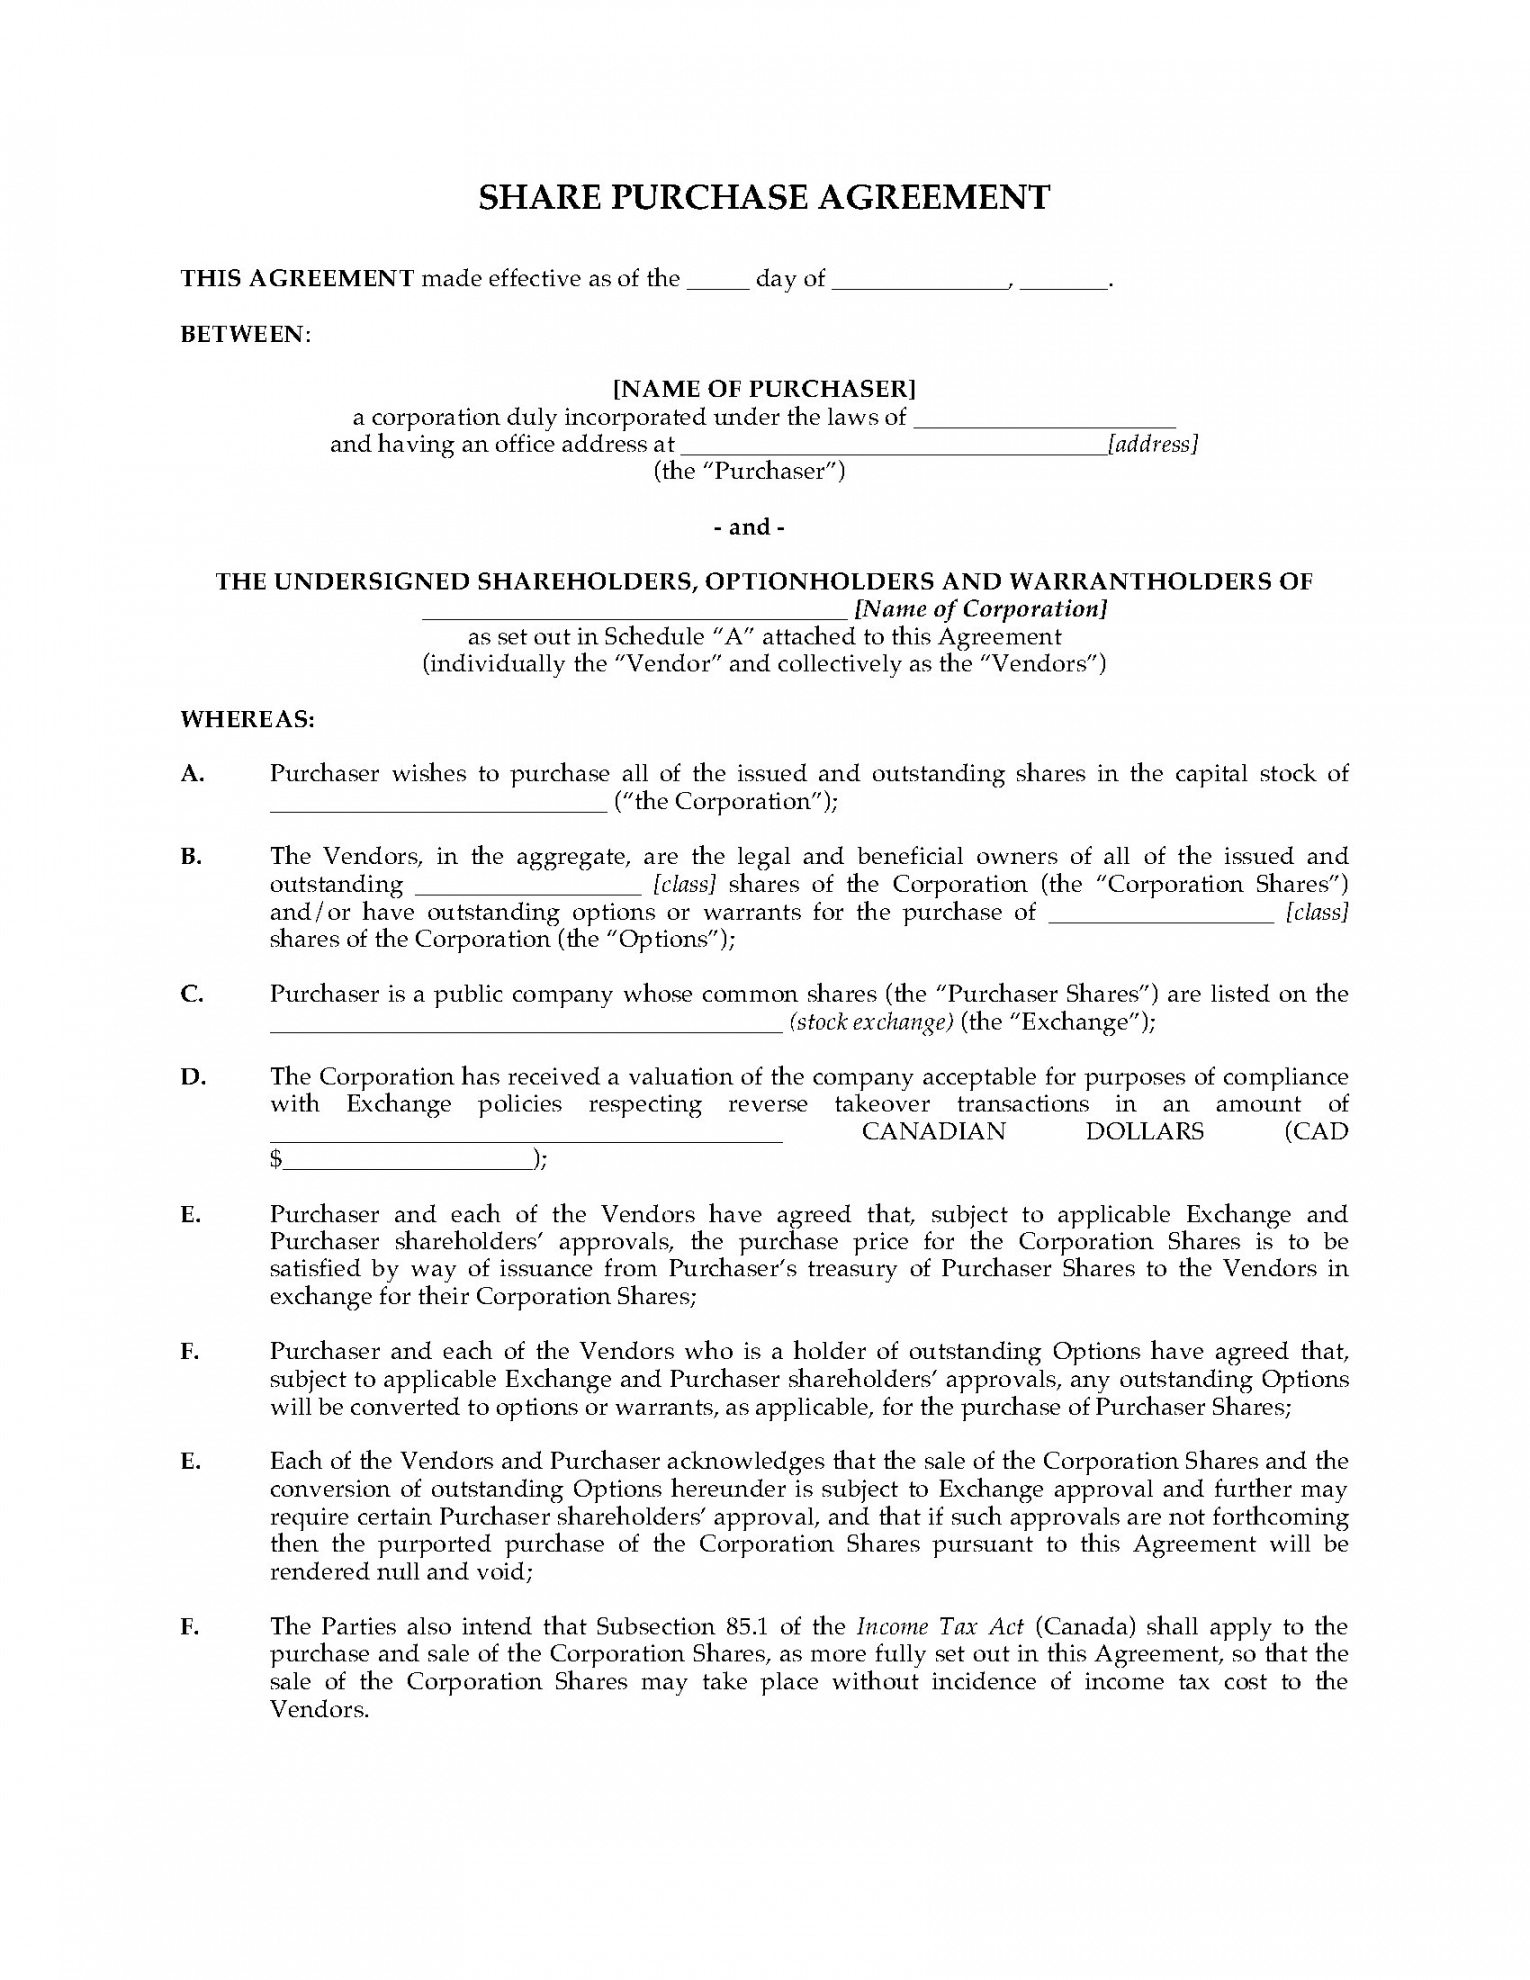 Sample Agreement For Takeover Of Business Editable Alberta Share Purchase Agreement For Reverse Takeover Legal